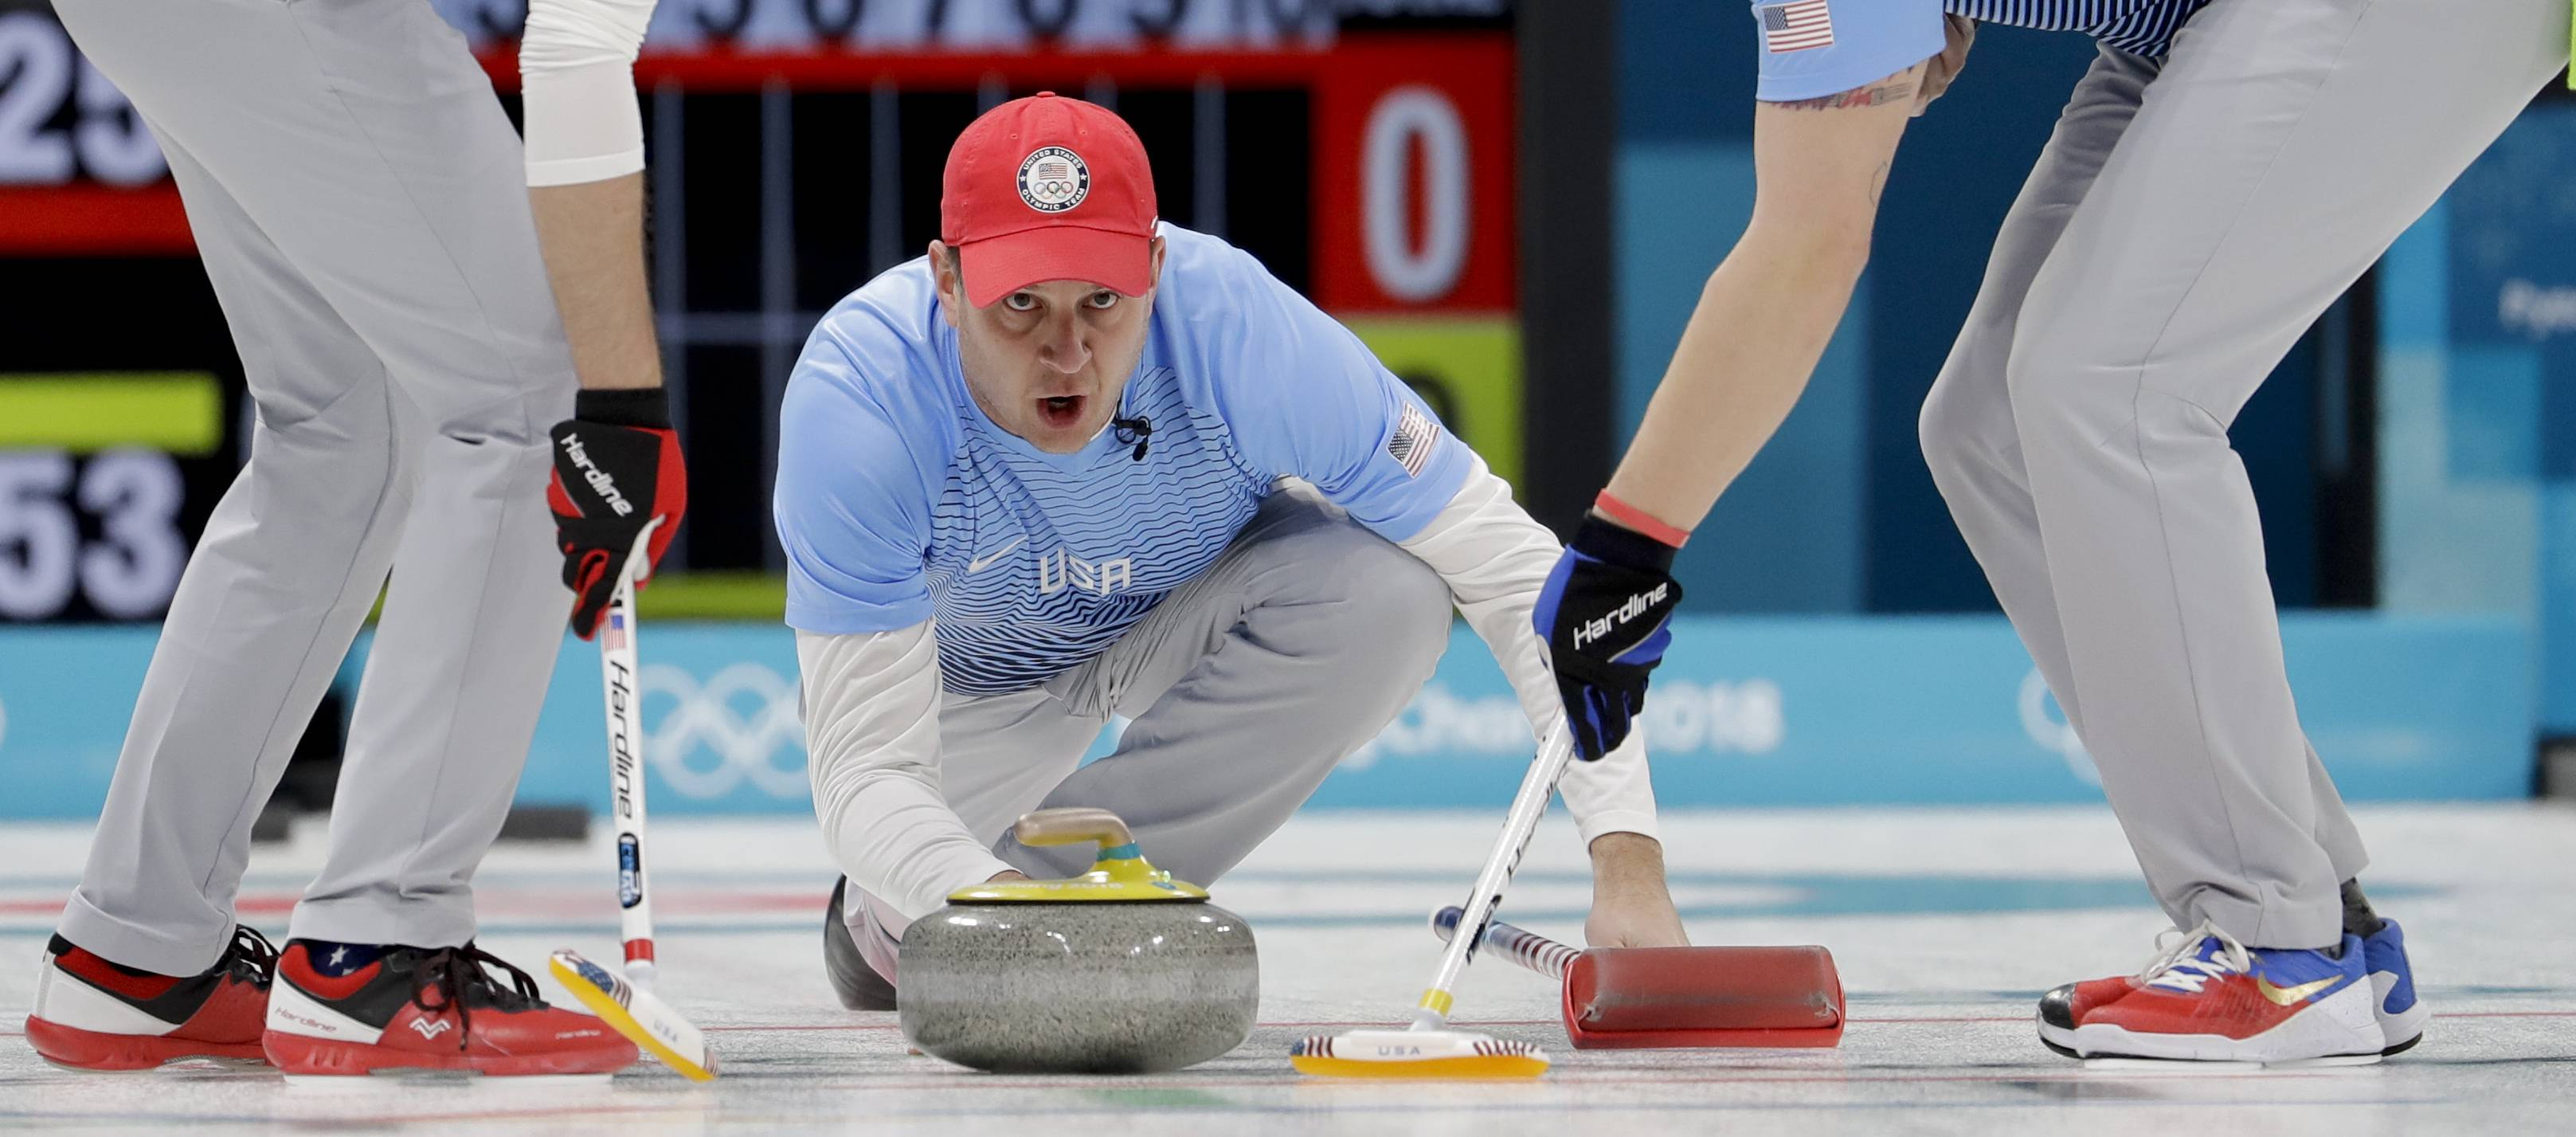 United States's skip John Shuster throws a stone during a men's curling match against Switzerland at the 2018 Winter Olympics in Gangneung, South Korea, Tuesday, Feb. 20, 2018.